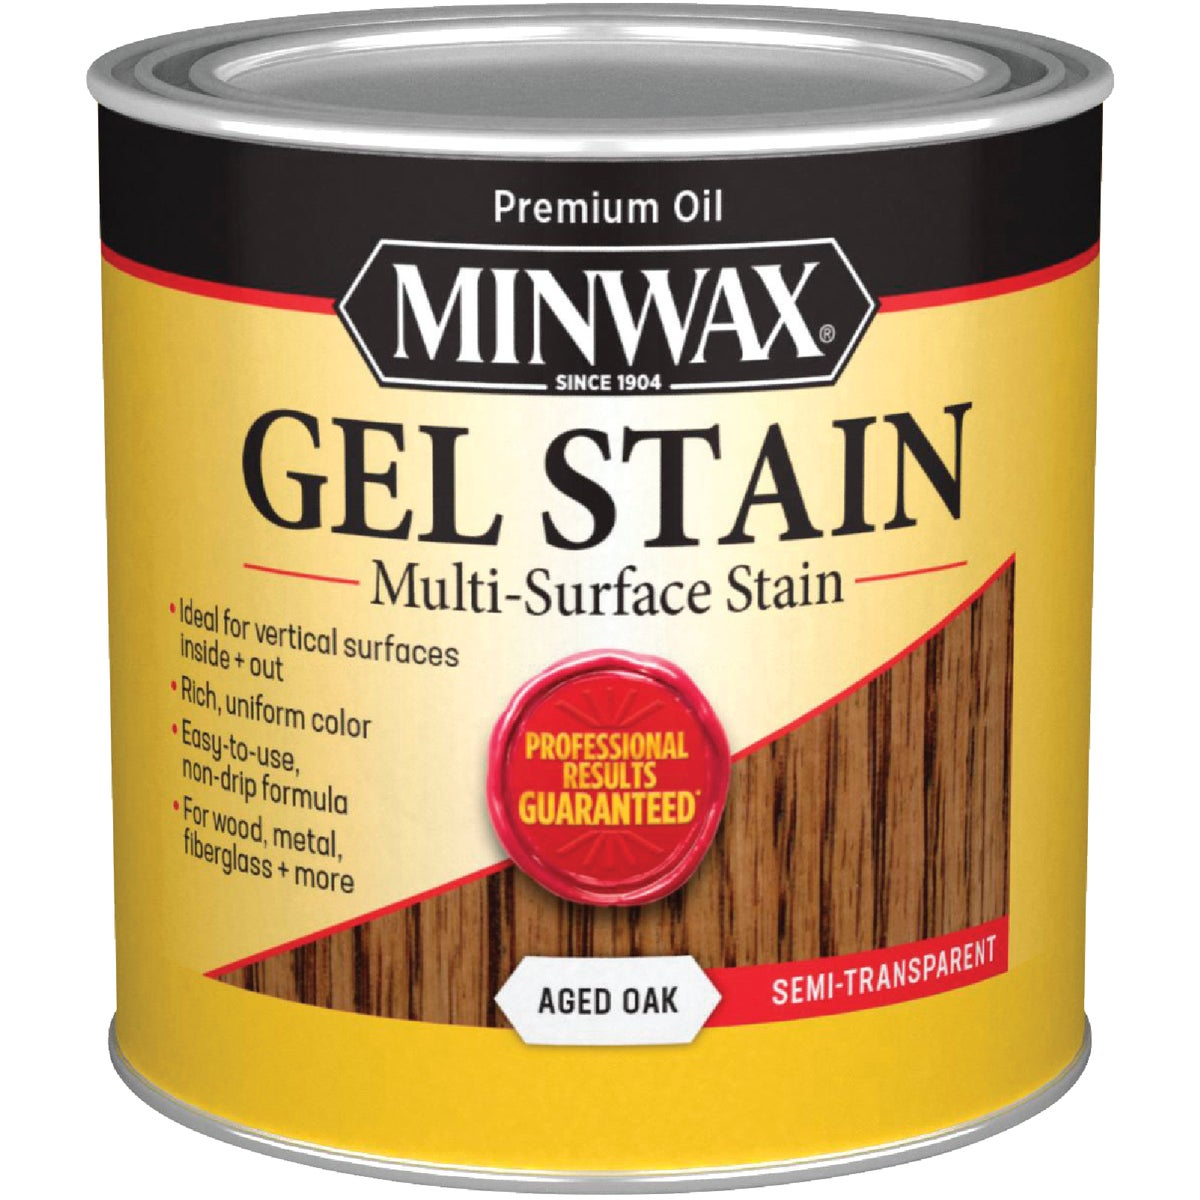 AGED OAK GEL STAIN - 260204444 by Minwax Company